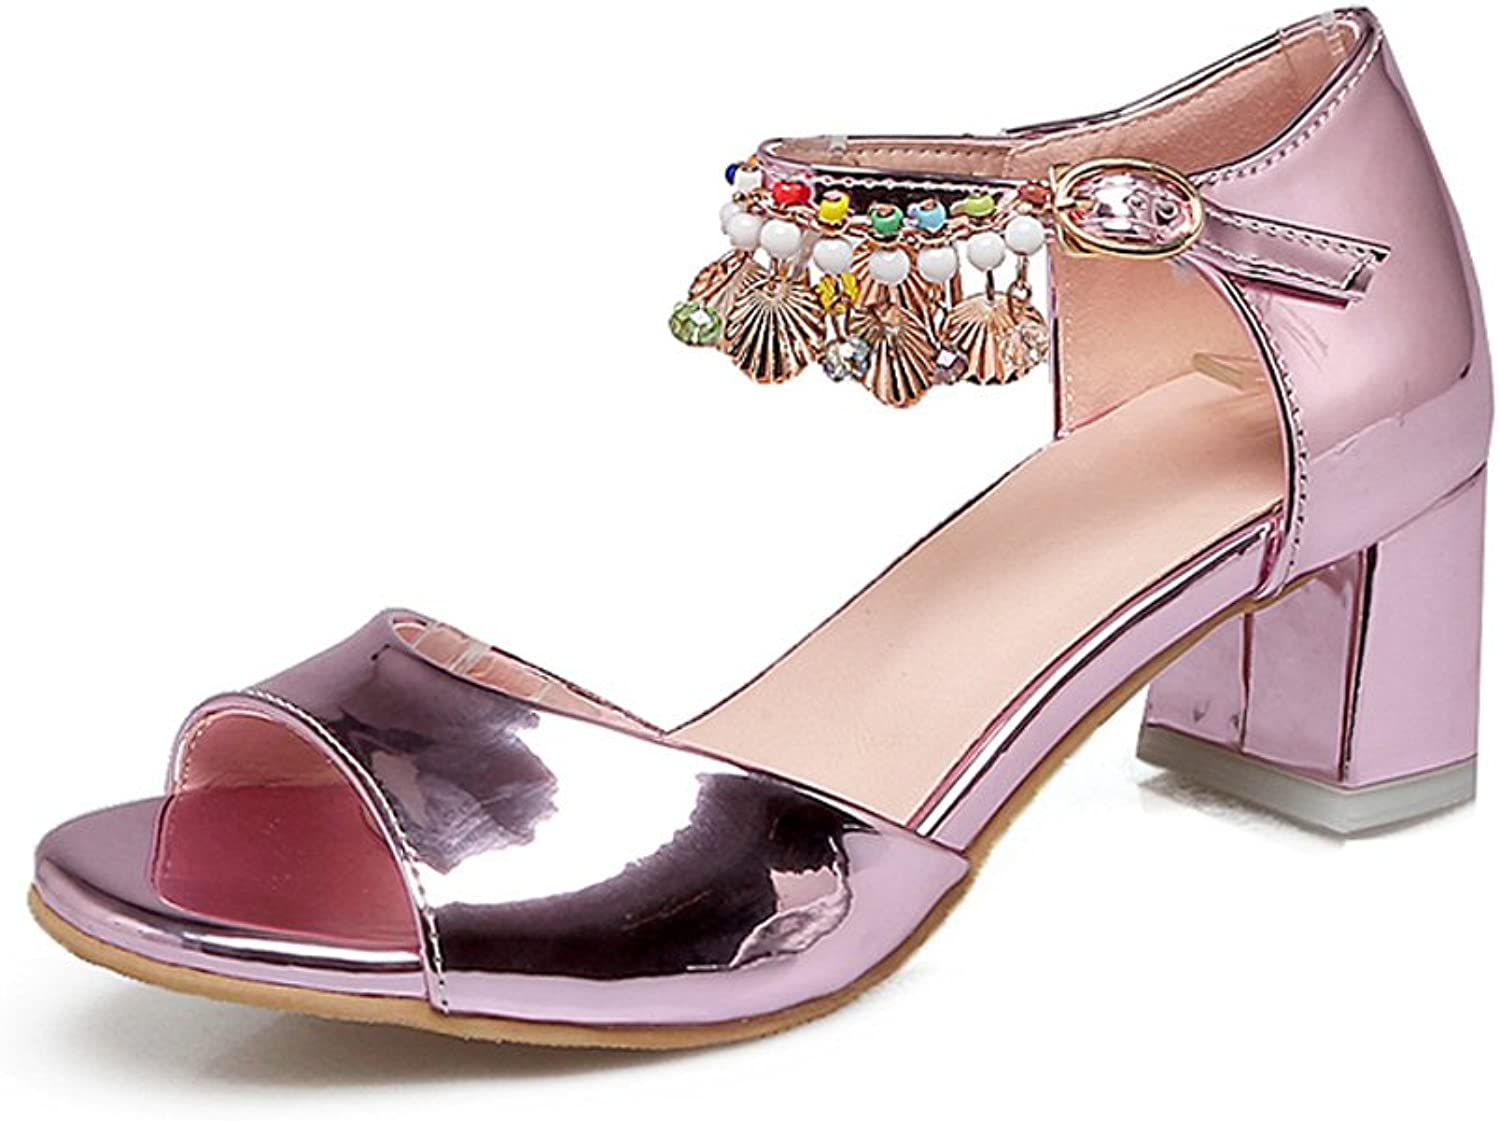 Genepeg Womens Sandals Summer Gladiator Bohemia String Bead High Heels Party shoes Pink